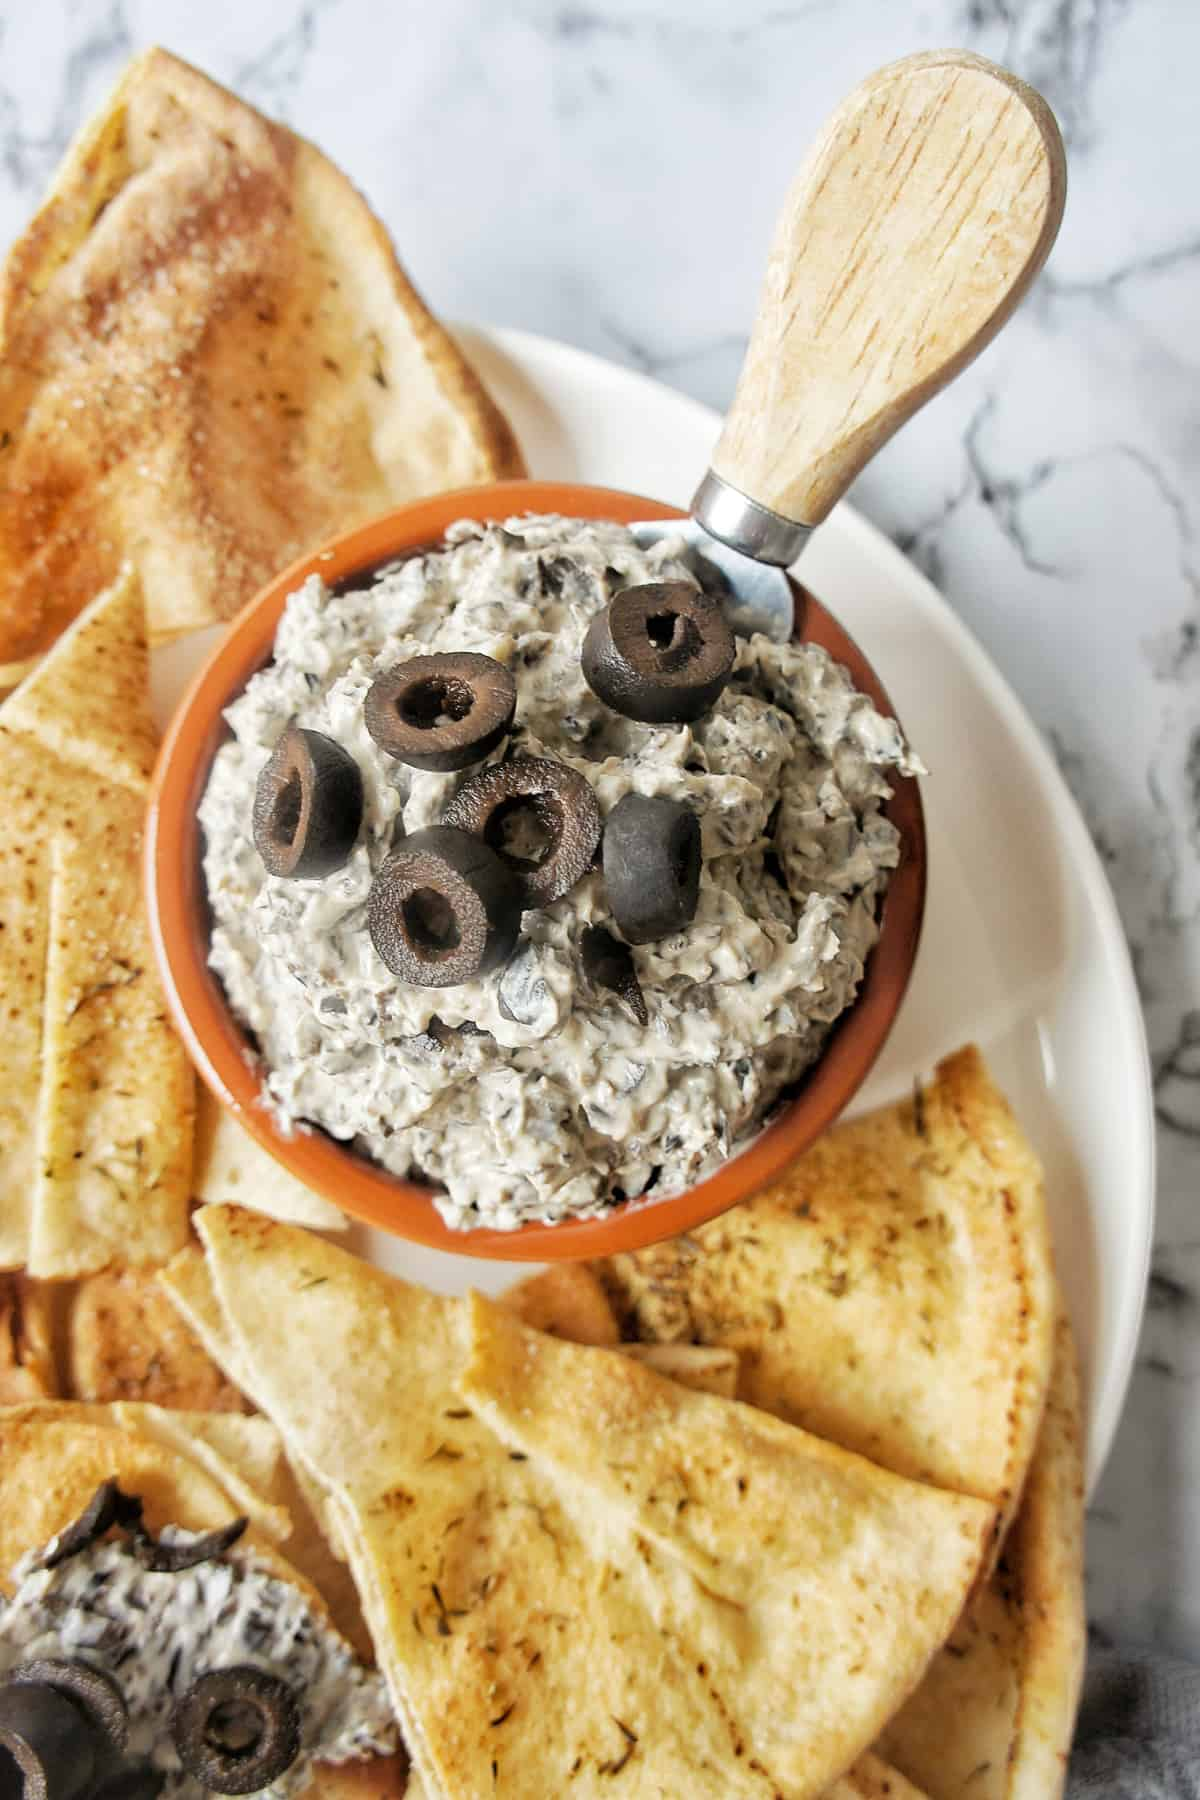 Black Olive Dip in bowl on plate with pita chips